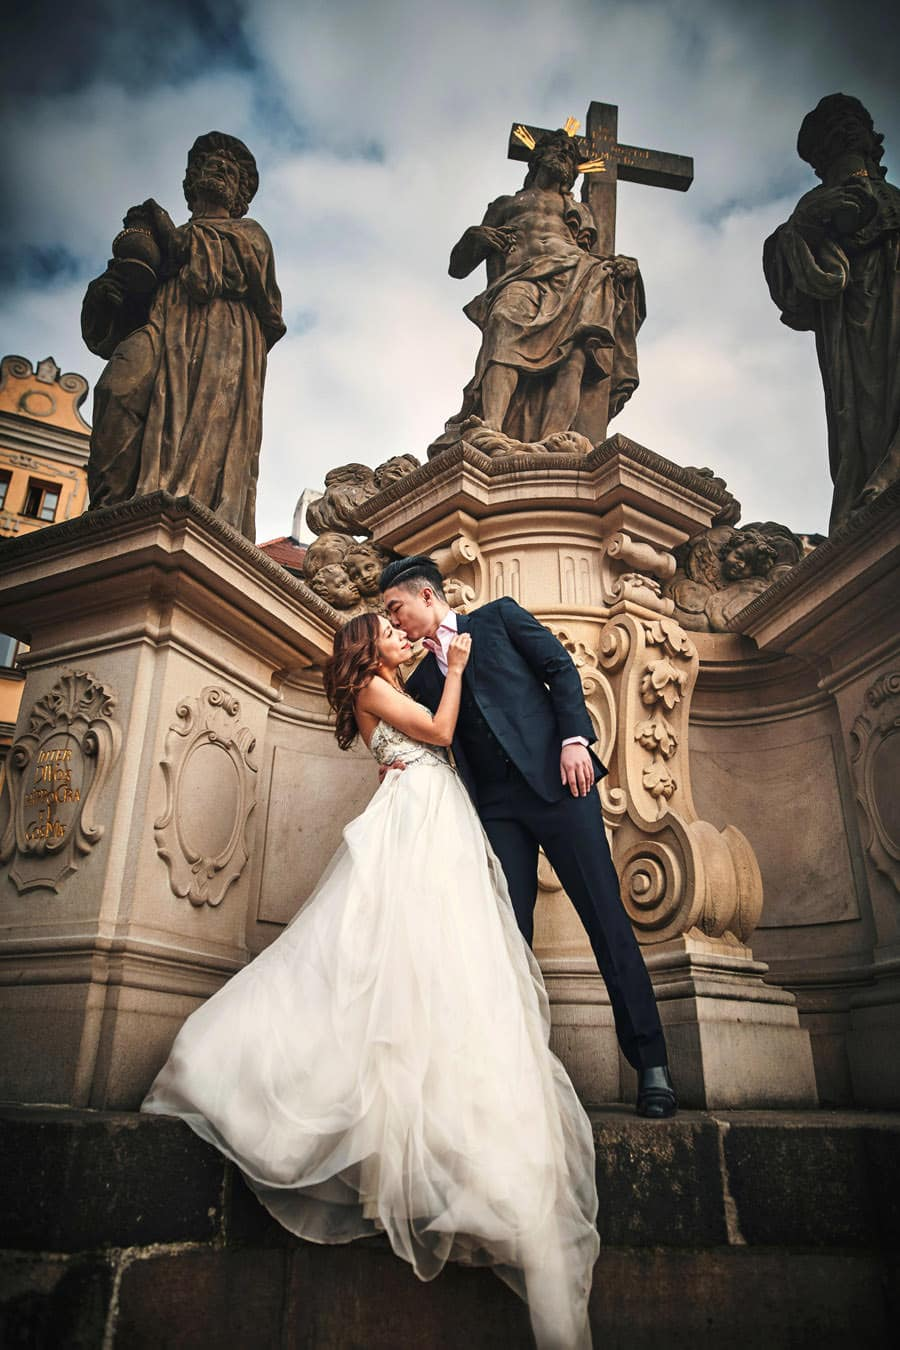 at the Charles Bridge in Prague - a Love Story Engagement photo shoot with Tina & Mike